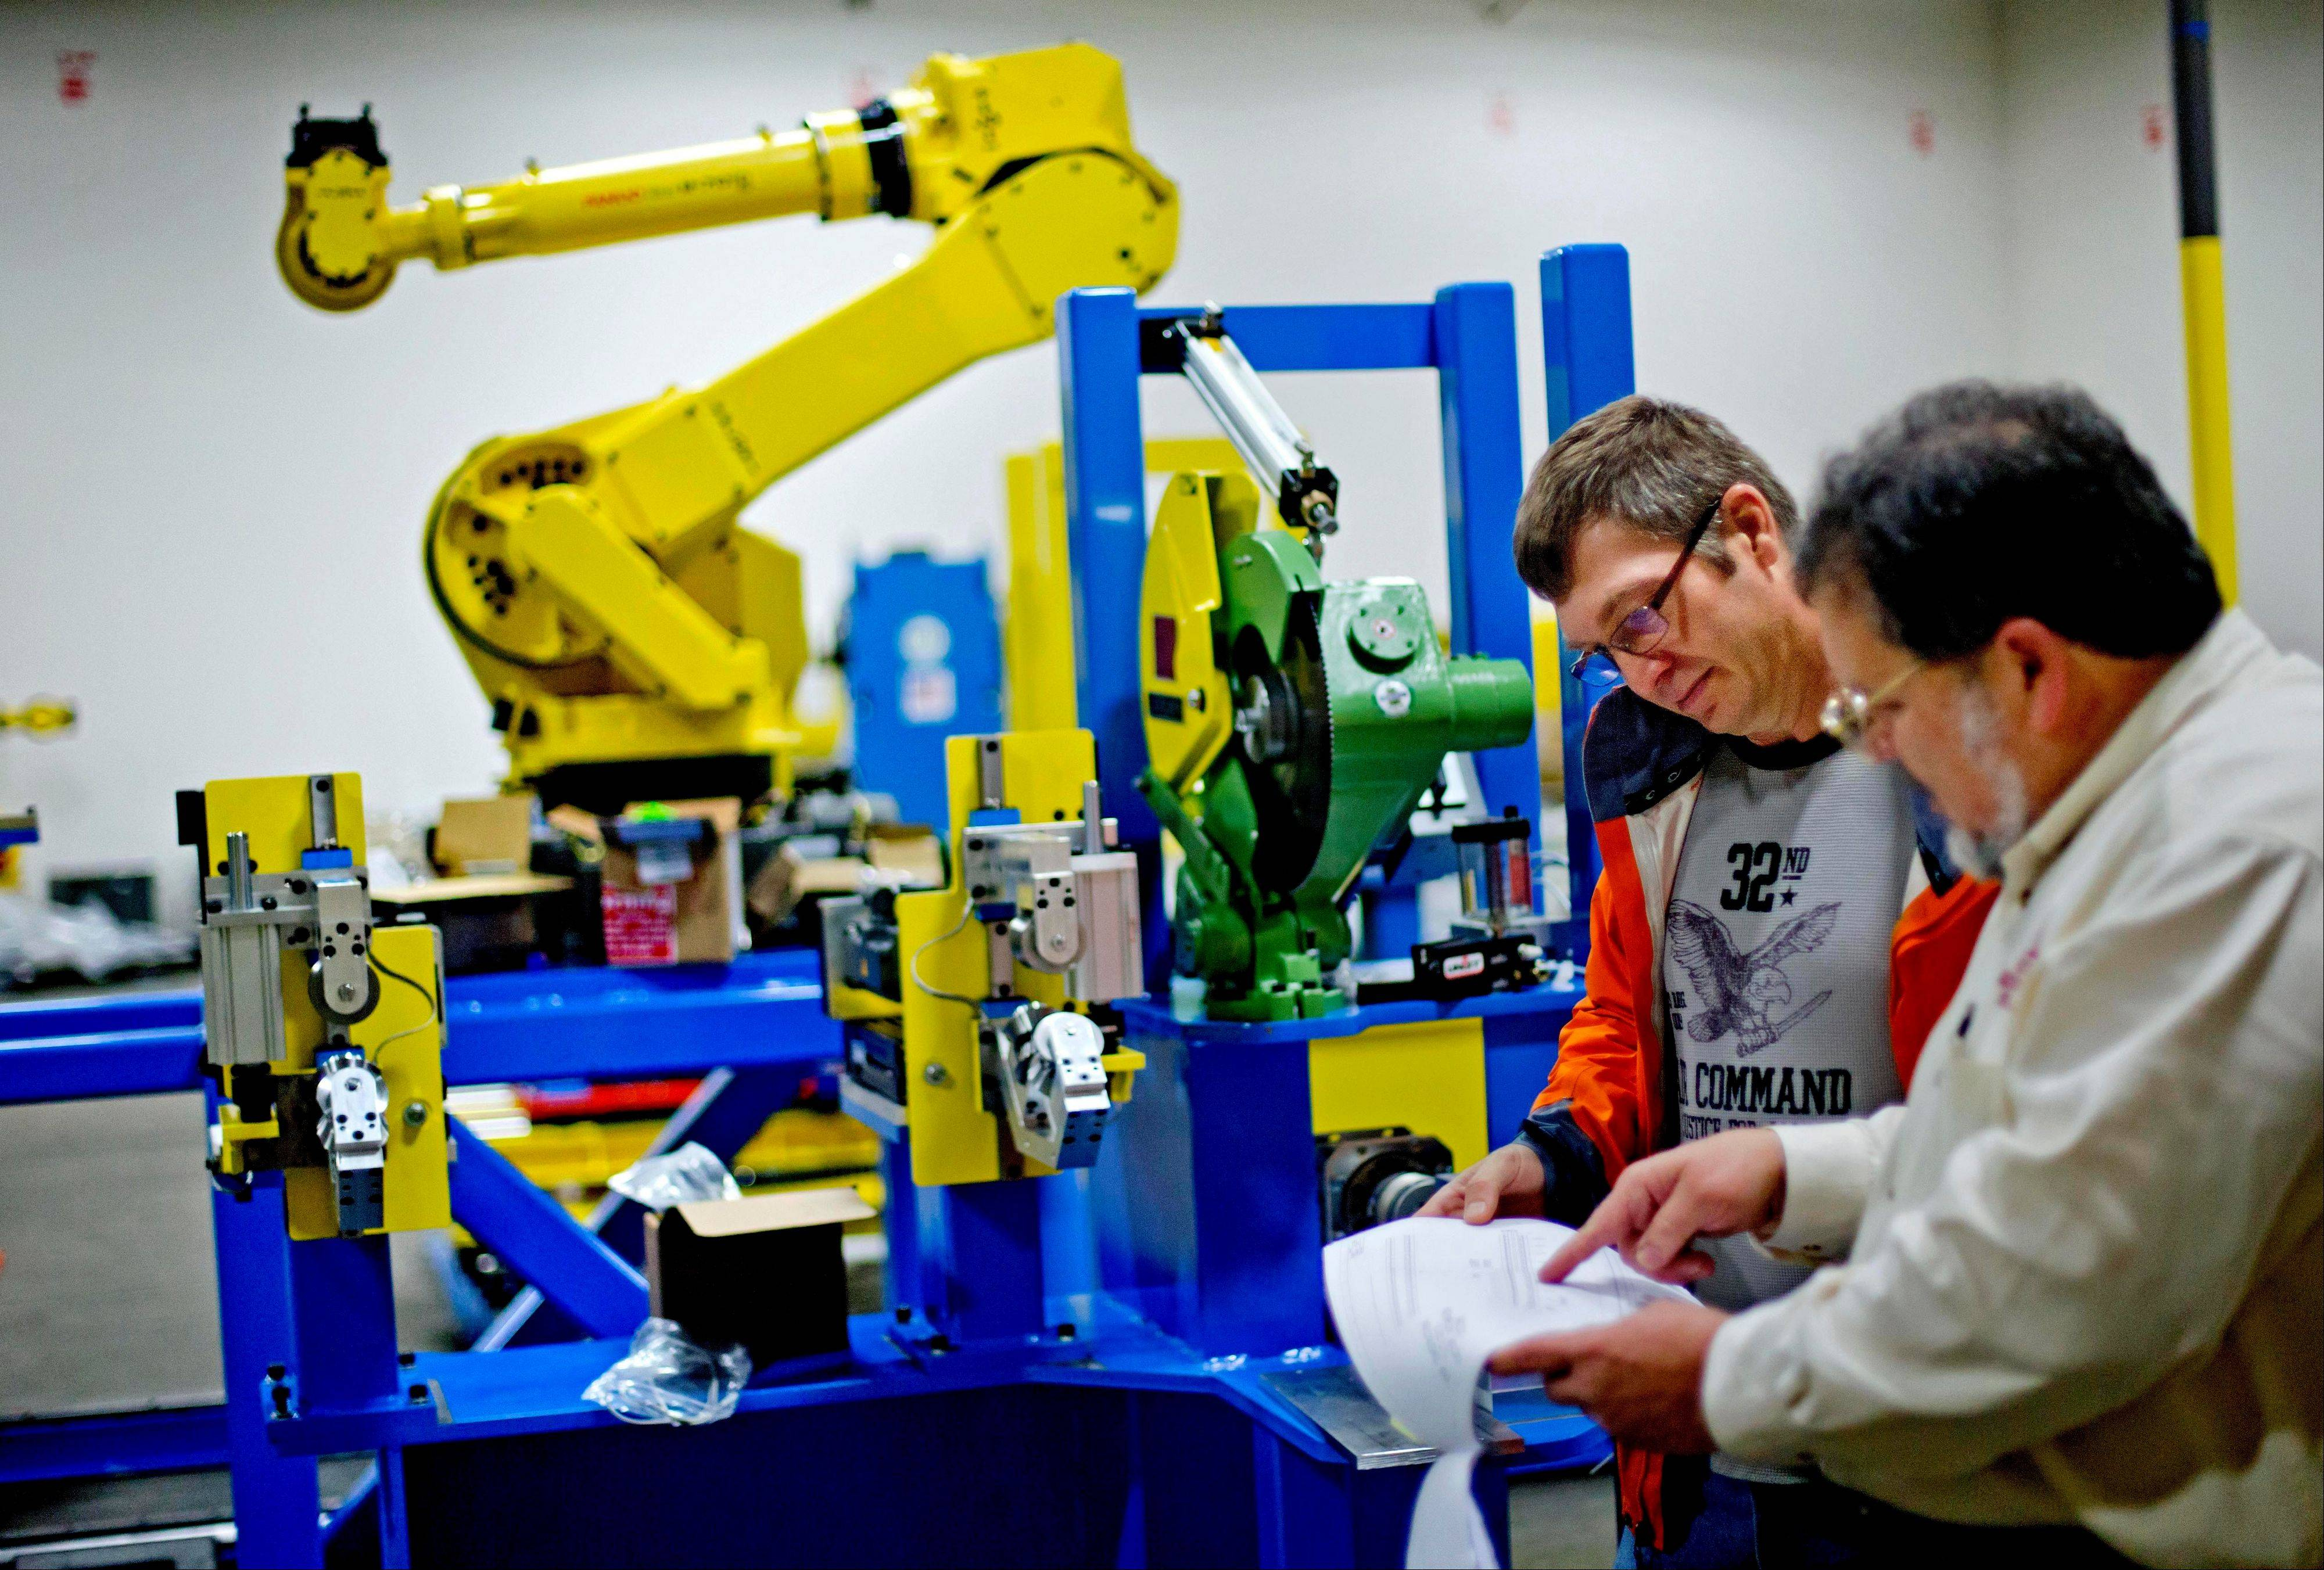 Rosser Pryor, co-owner and President of Factory Automation Systems, right, looks over plans with John Ridgley, project manager, next to a high-performance industrial robot at the company�s Atlanta facility.